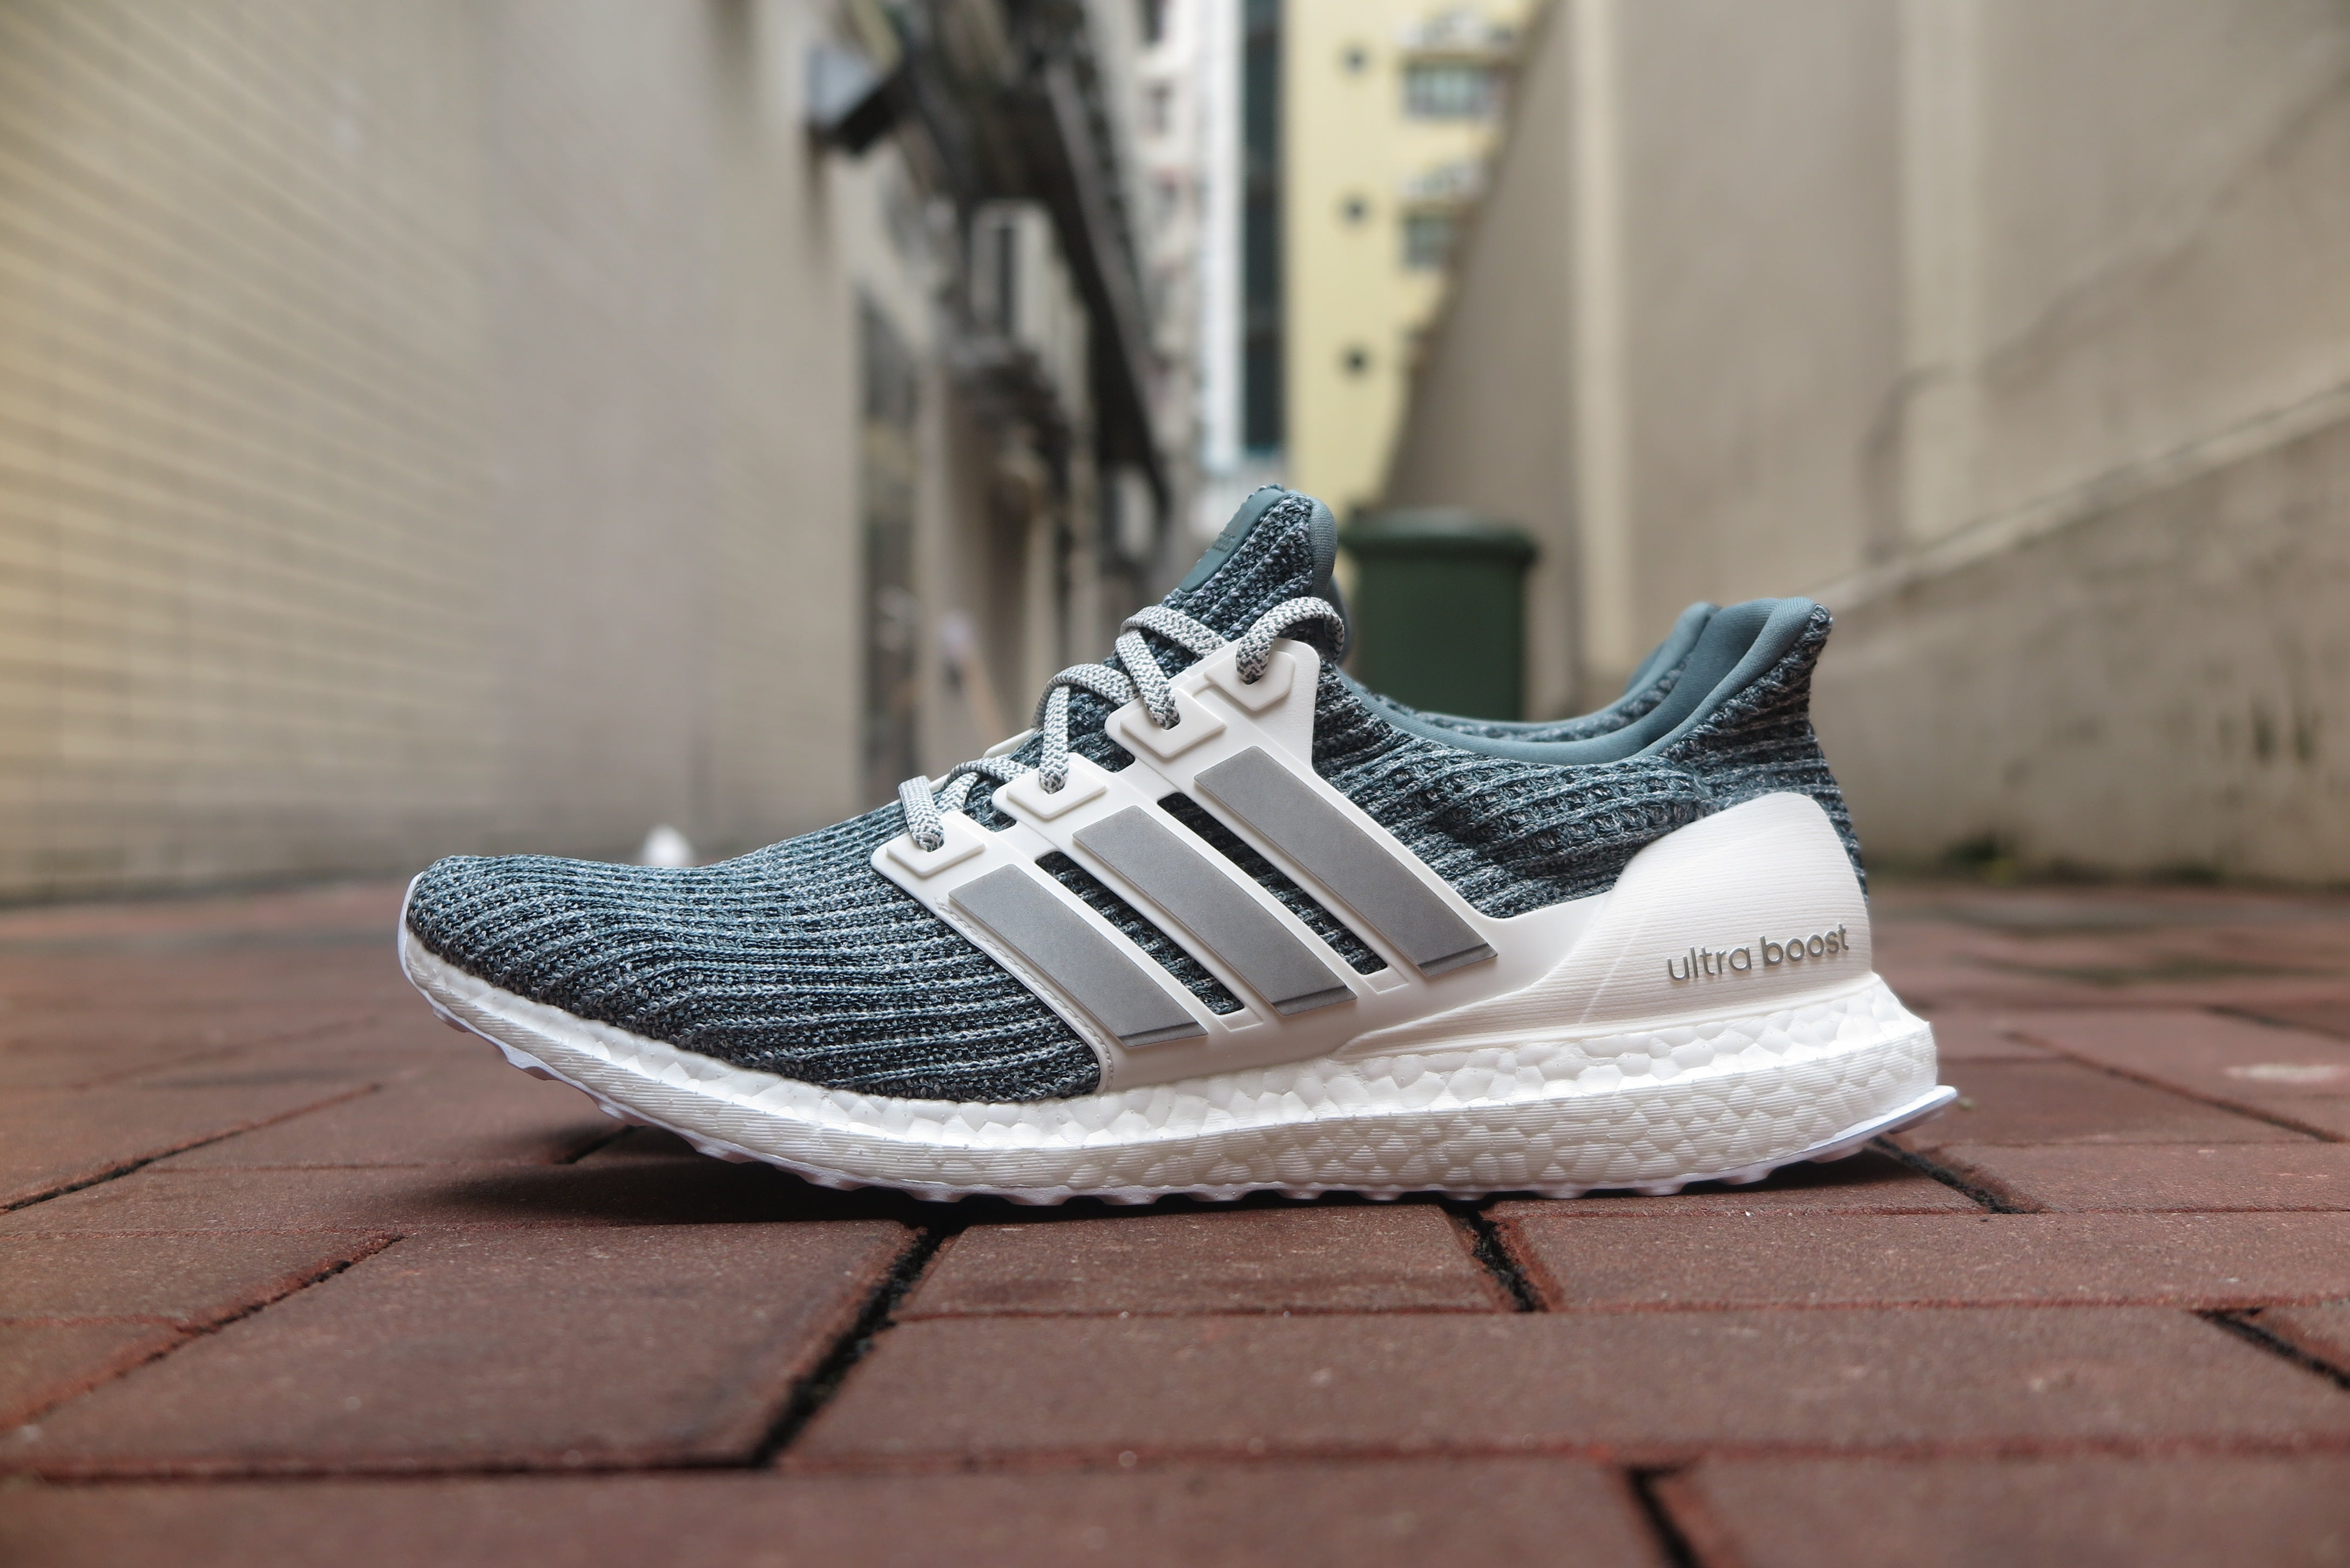 adidas Ultra Boost 4.0 LTD - Silver Metallic/Cloud White #CM8272-Preorder Item-Navy Selected Shop